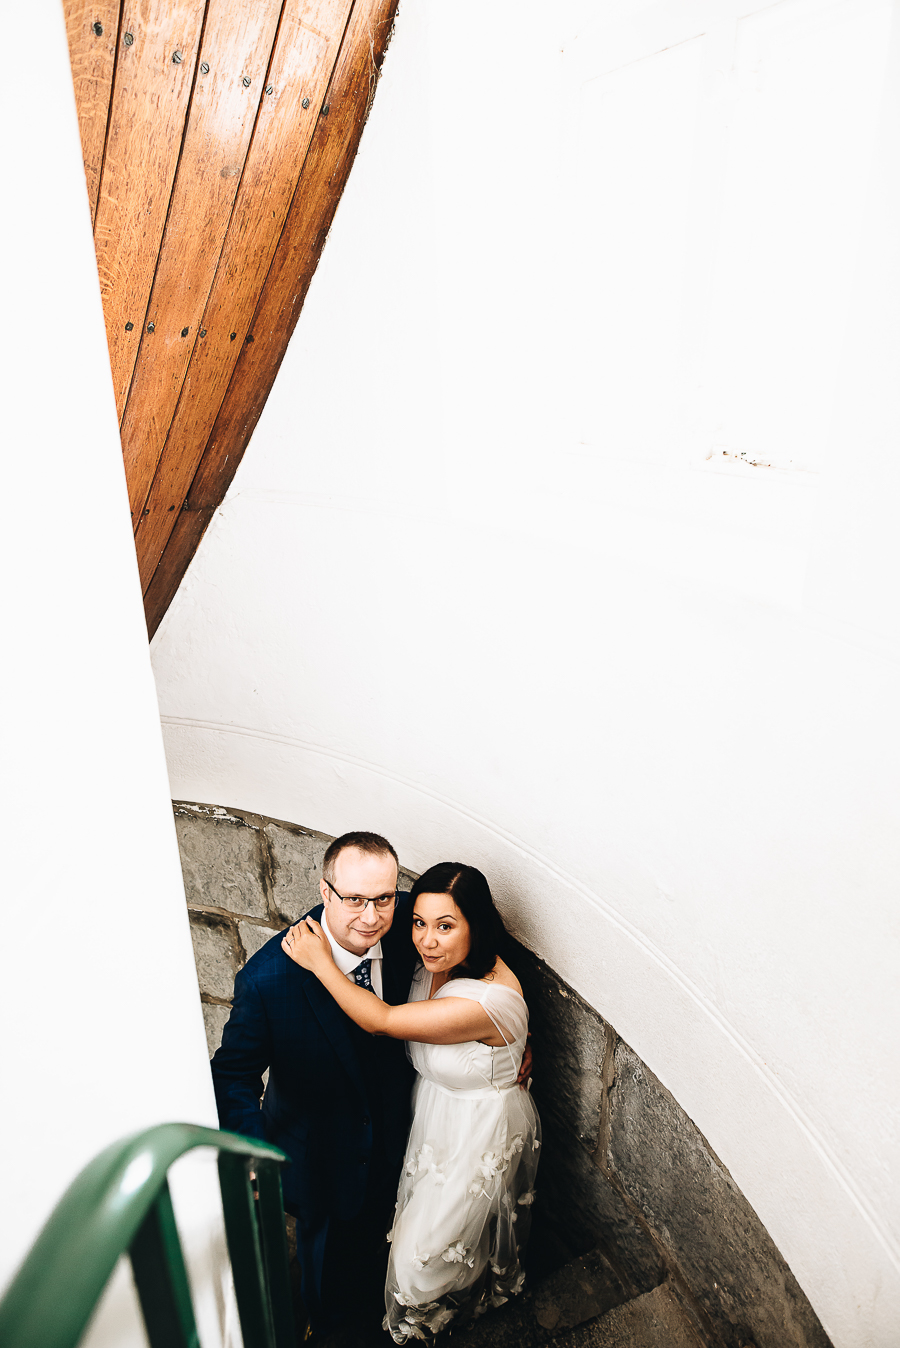 A Nash Point Lighthouse Wedding - Swansea and South Wales Wedding Photographer - Our Beautiful Adventure Photography